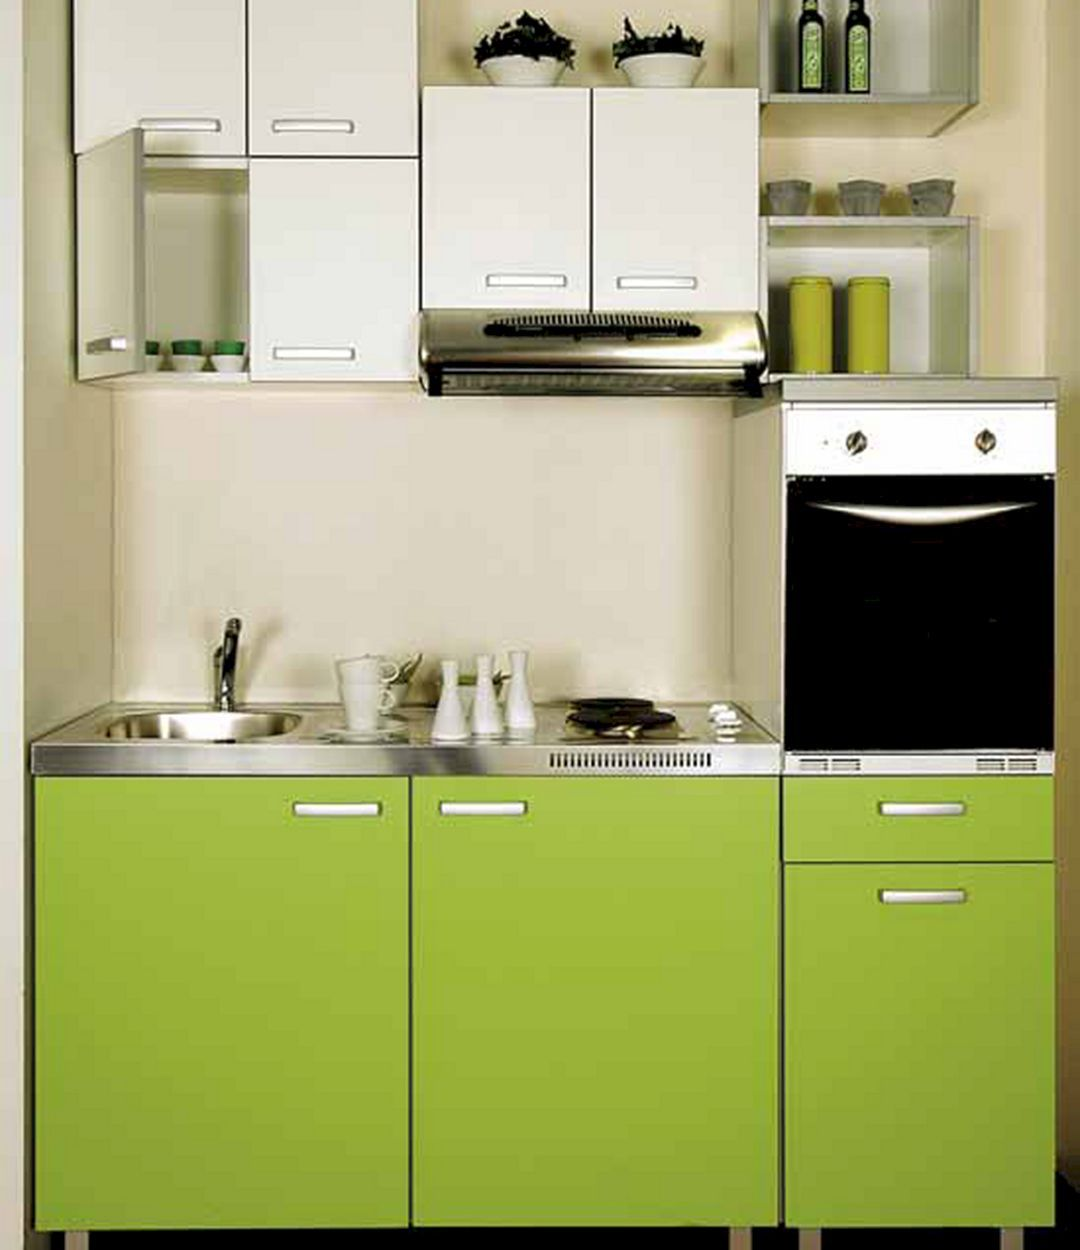 24 Best Kitchen Keeping Room Ideas For More Clean And Cozy Room Tiny Kitchen Design Interior Kitchen Small Kitchen Design Small